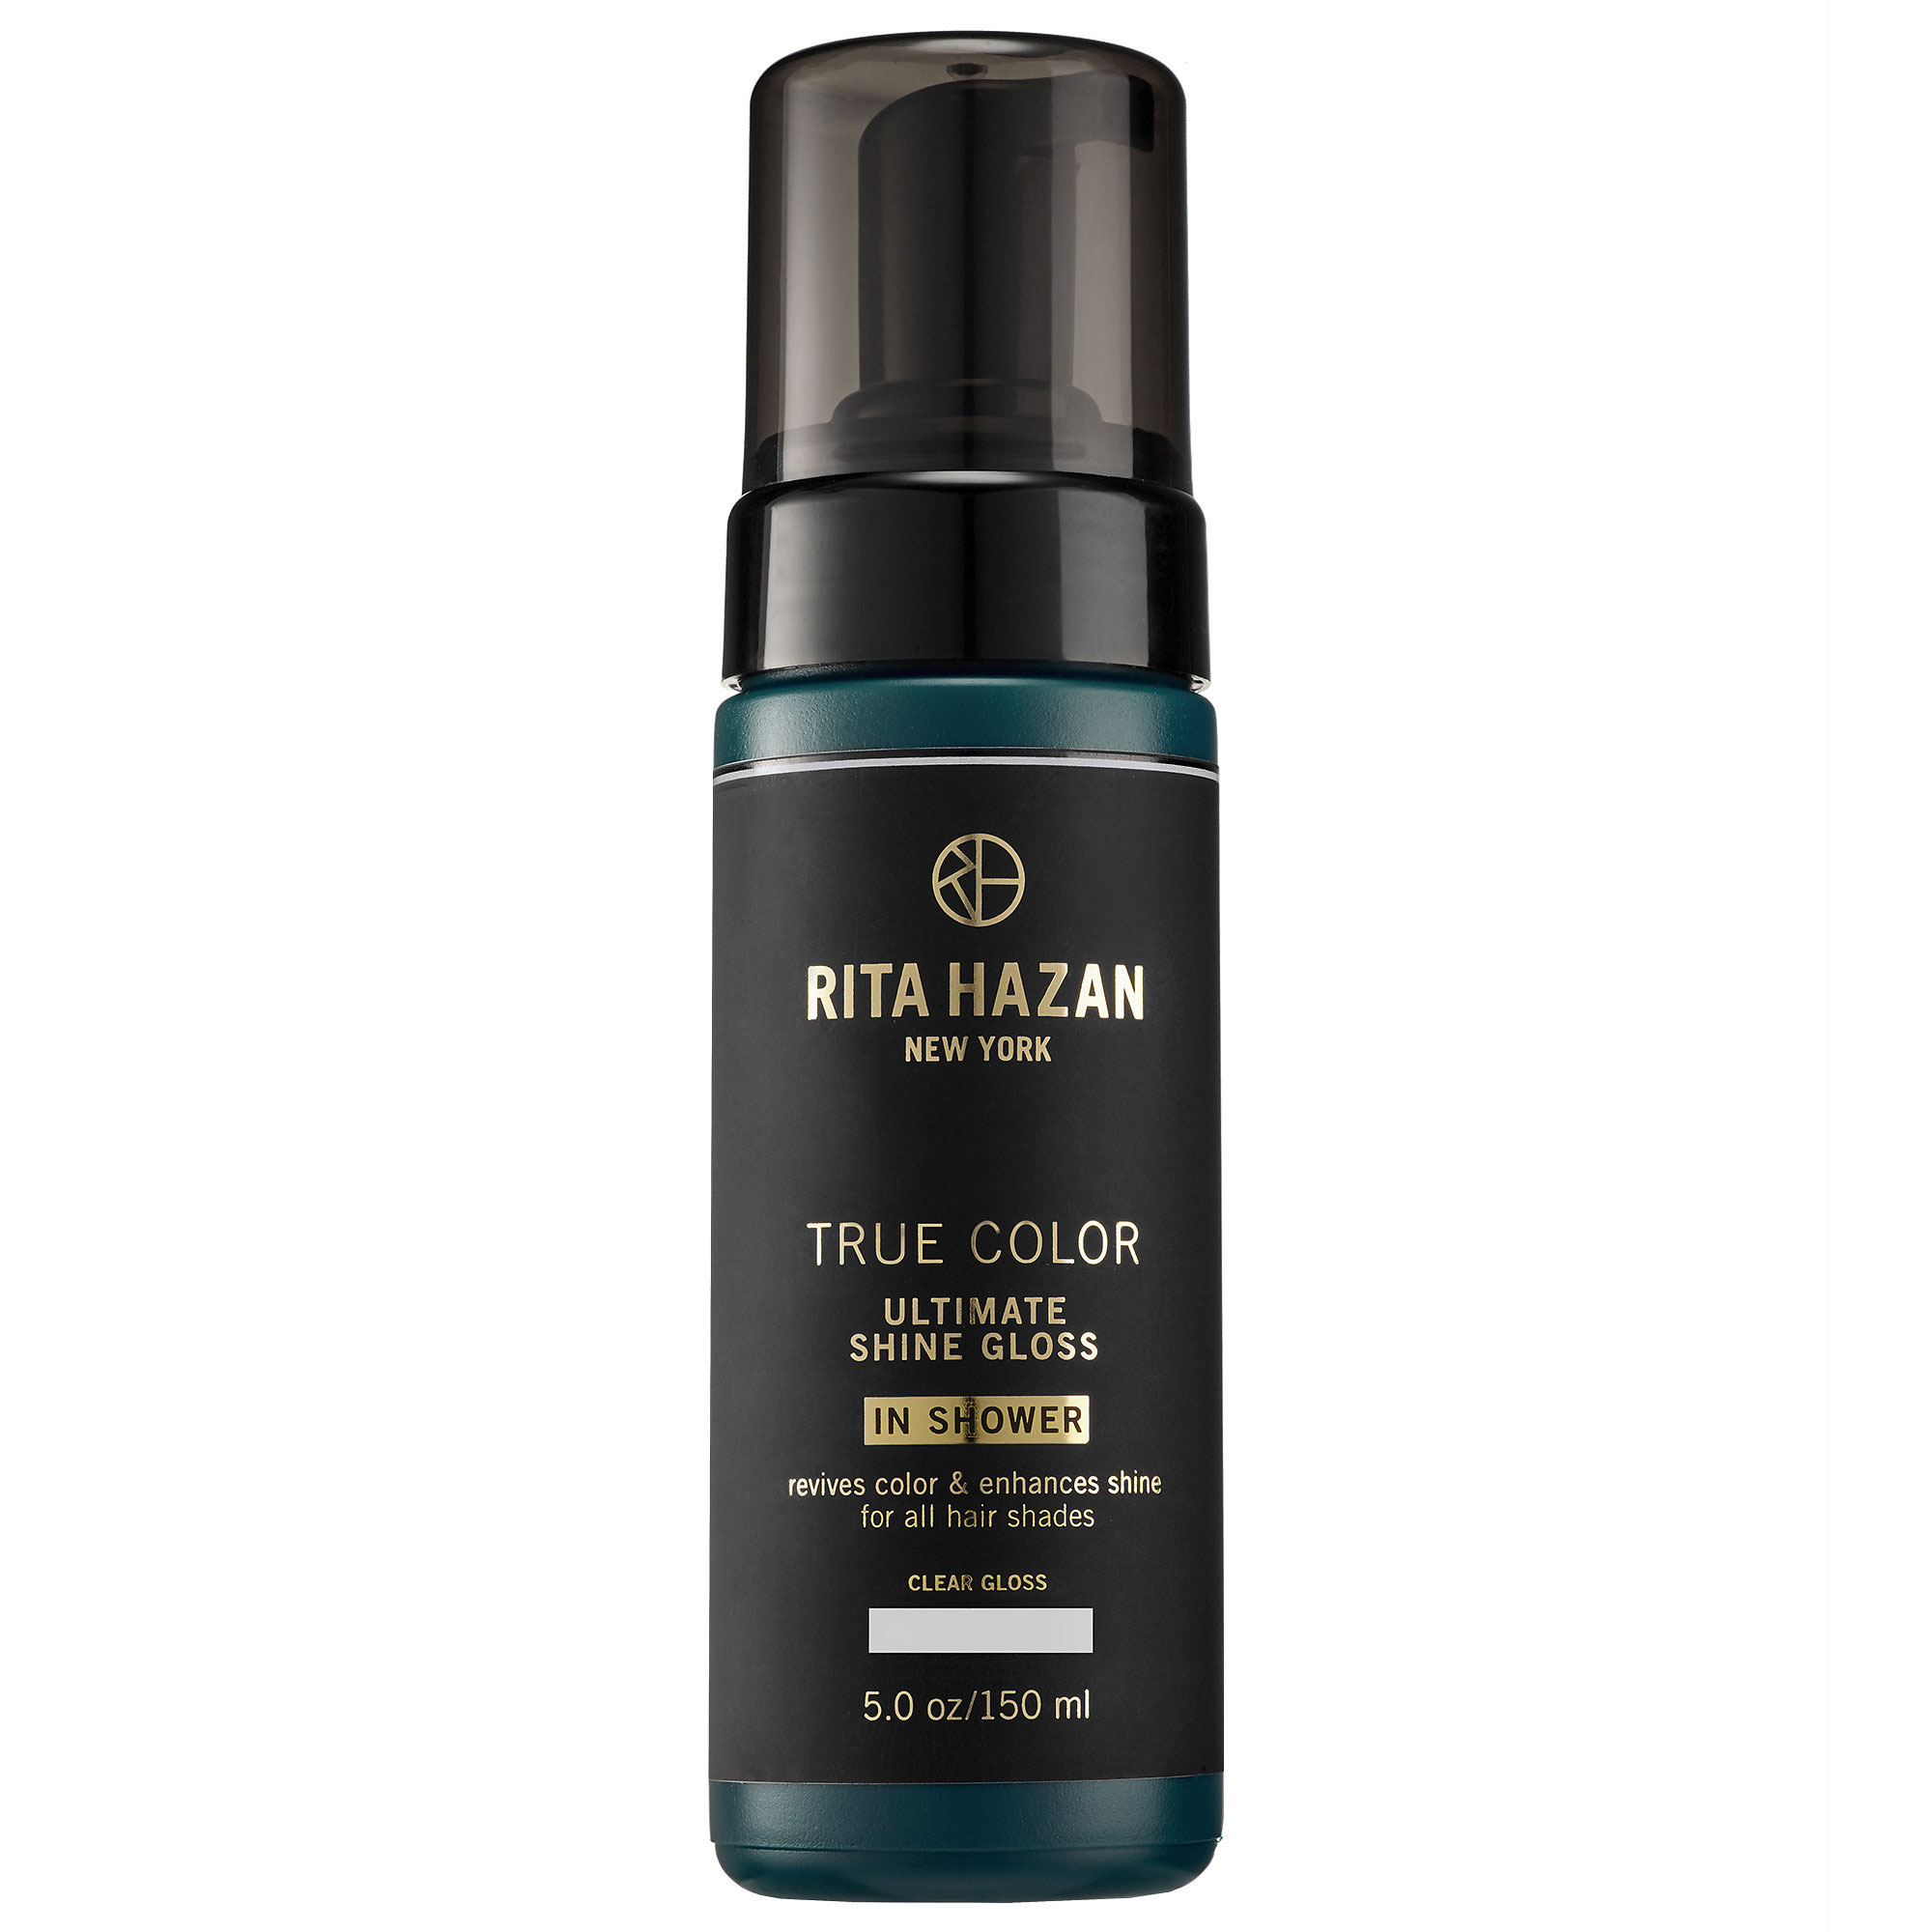 Rita Hazan Ultimate Shine Gloss in Clear